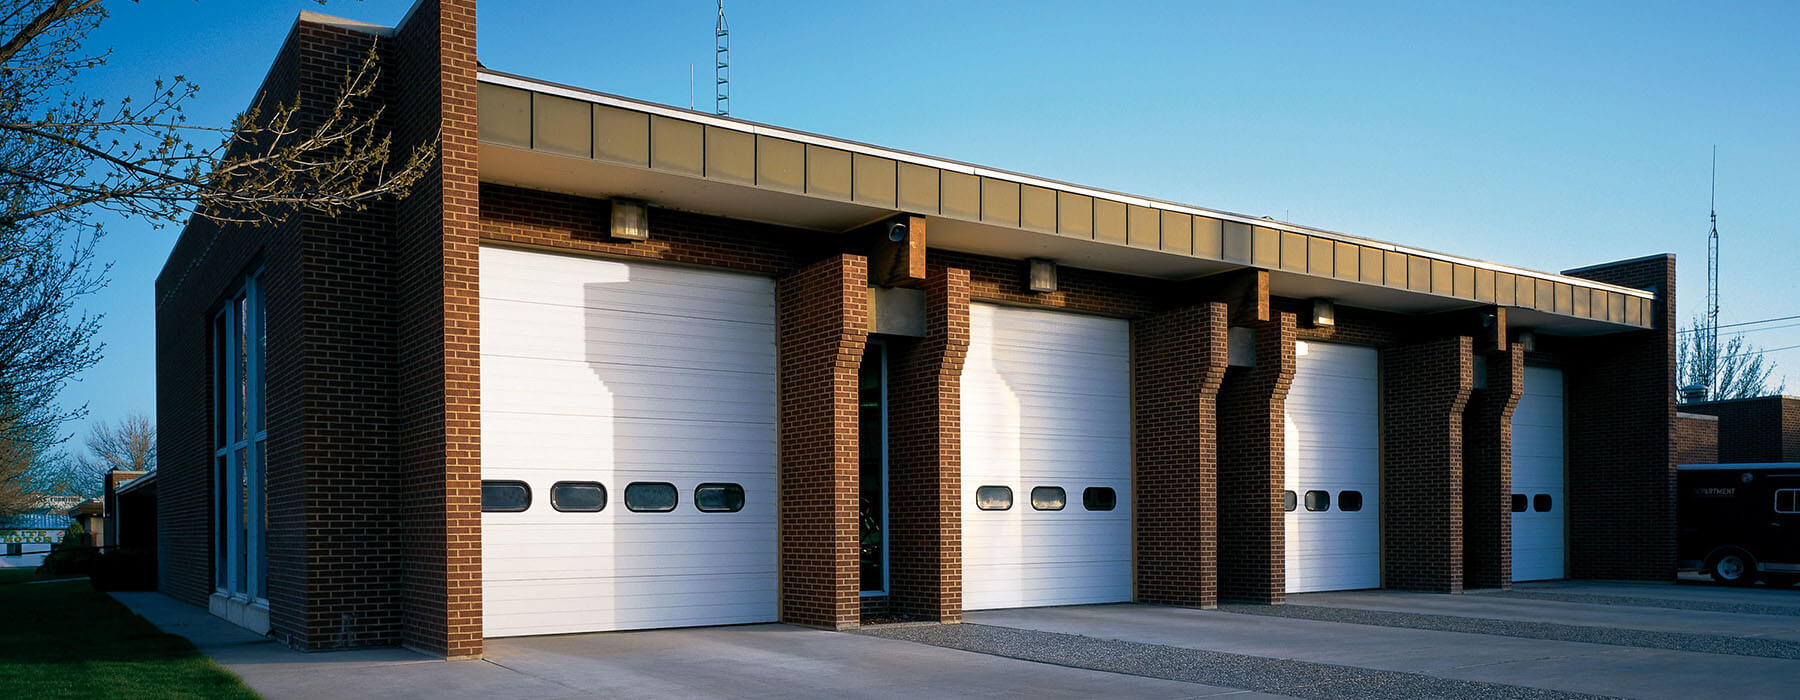 Wonderful Overhead Door Company Of Sioux City Blog